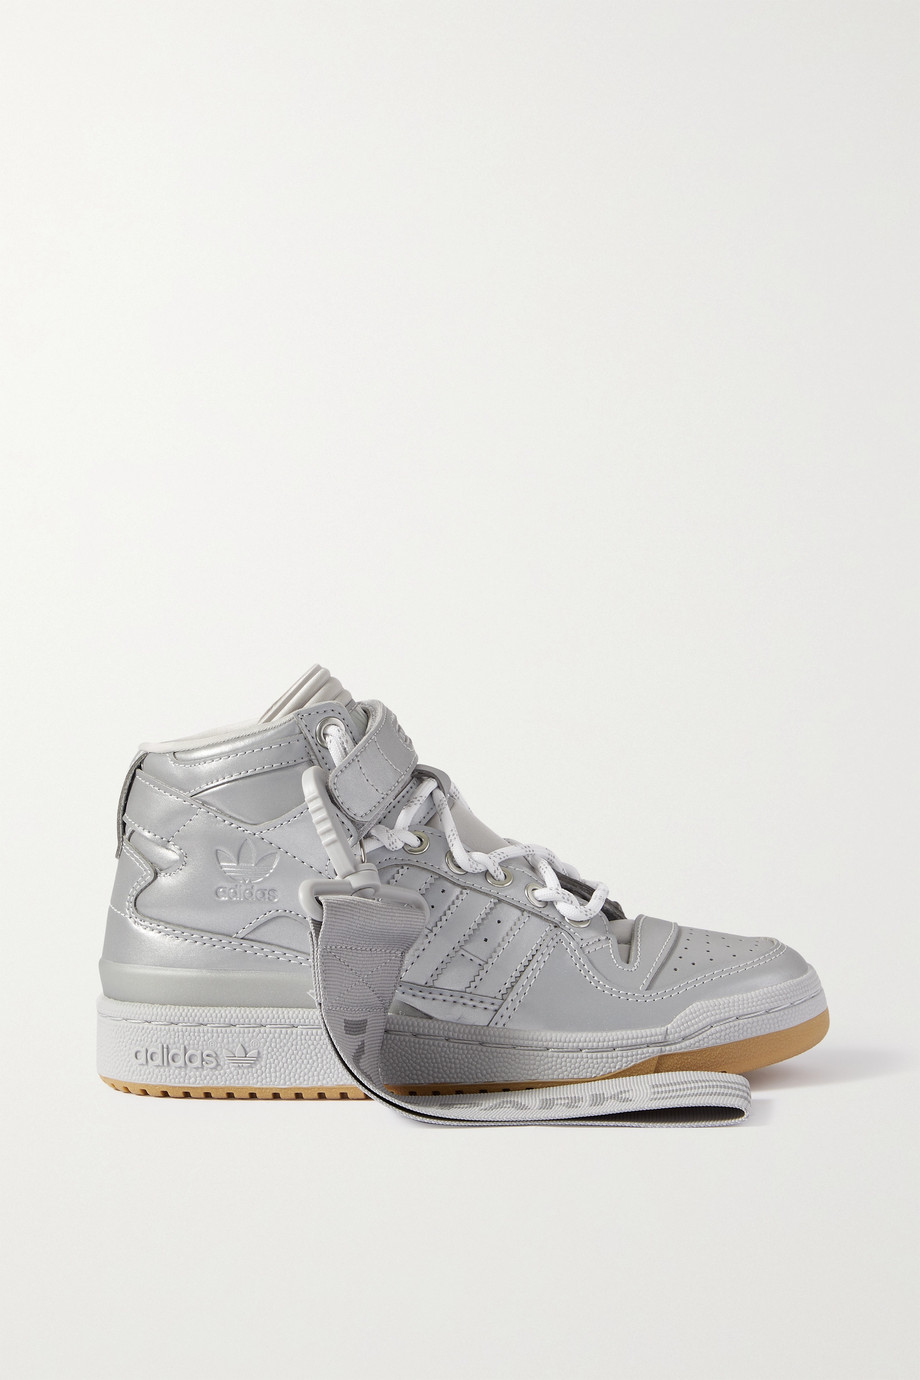 adidas Originals + Ivy Park Forum Mid metallic faux leather high-top sneakers